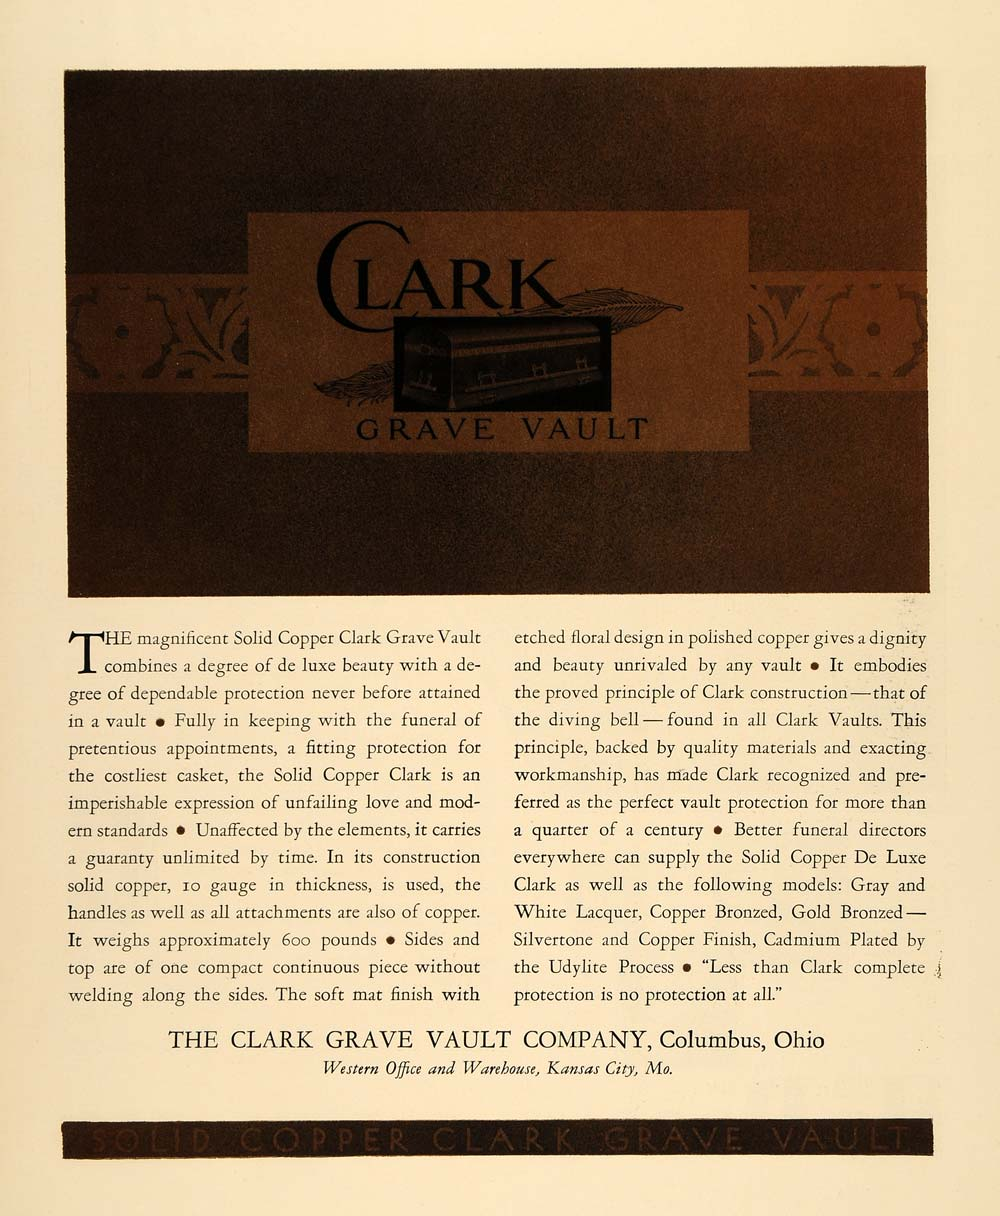 1930 Ad Clark Grave Vault Bronze Copper Columbus Ohio - ORIGINAL ADVERTISING F3A